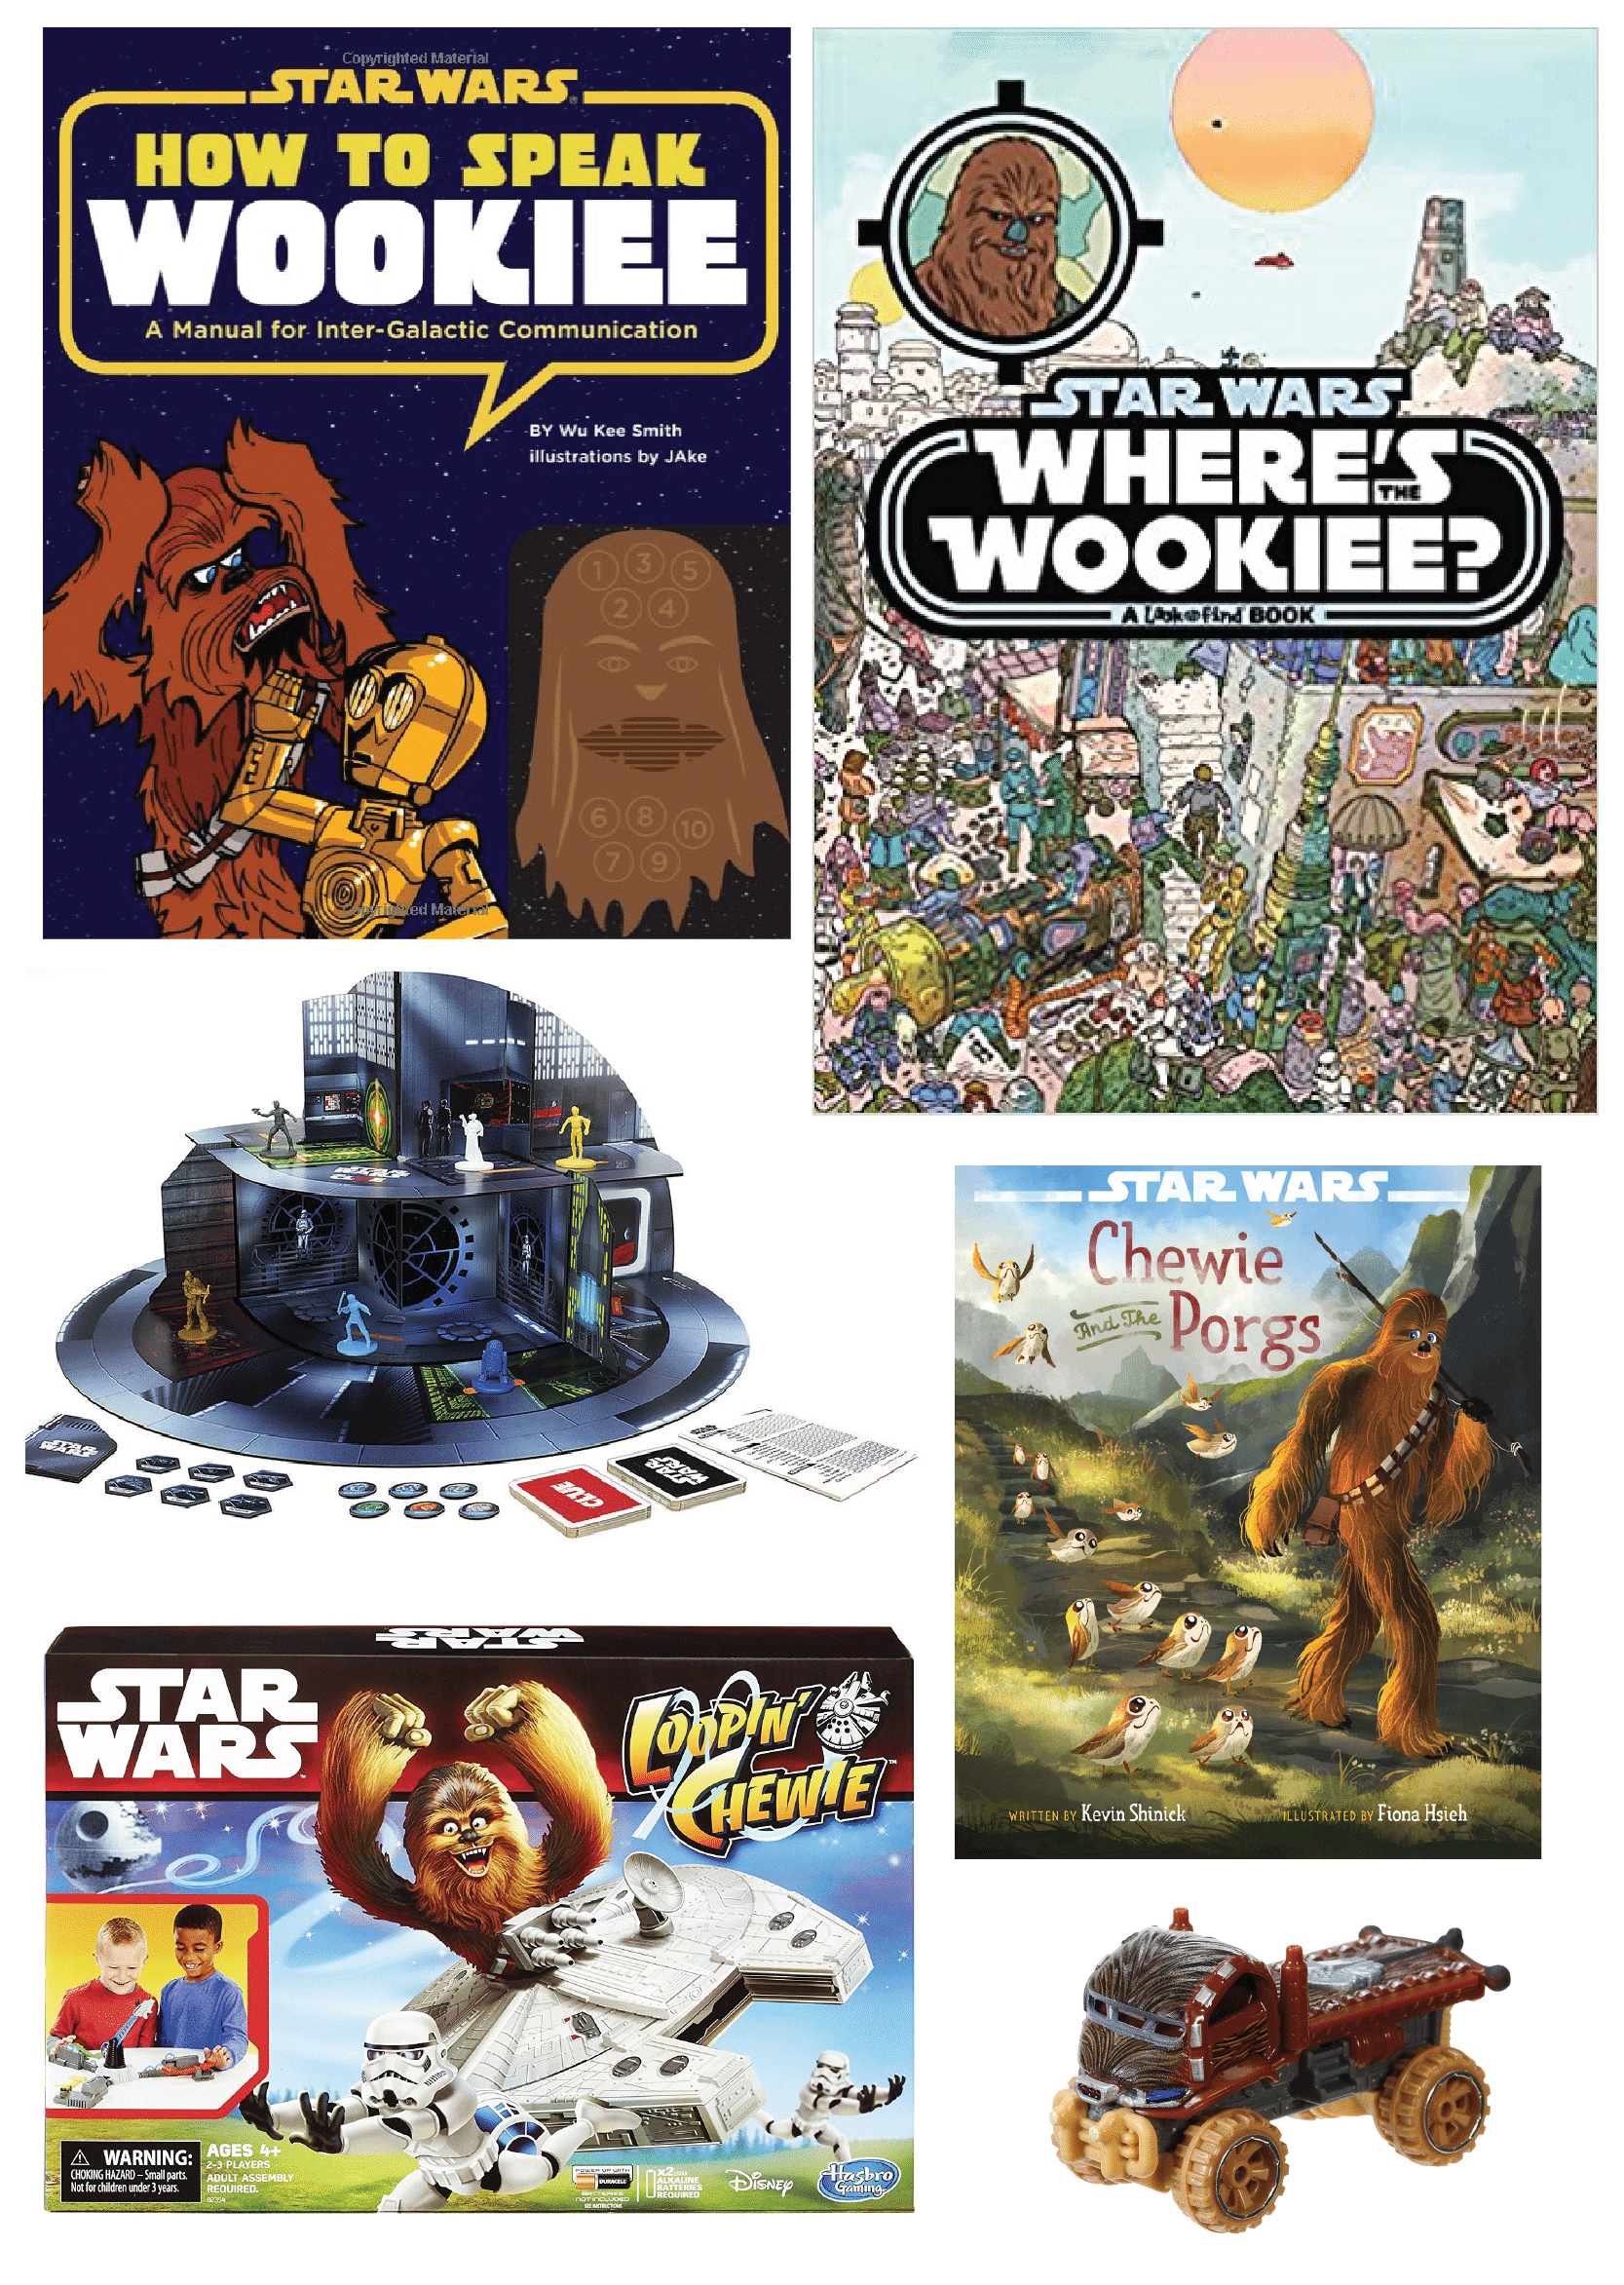 Need Star Wars gift to bring to a party? These Chewbacca inspired products are some of the best birthday gifts, Star Wars clothes, or really just products for people who loved The Last Jedi